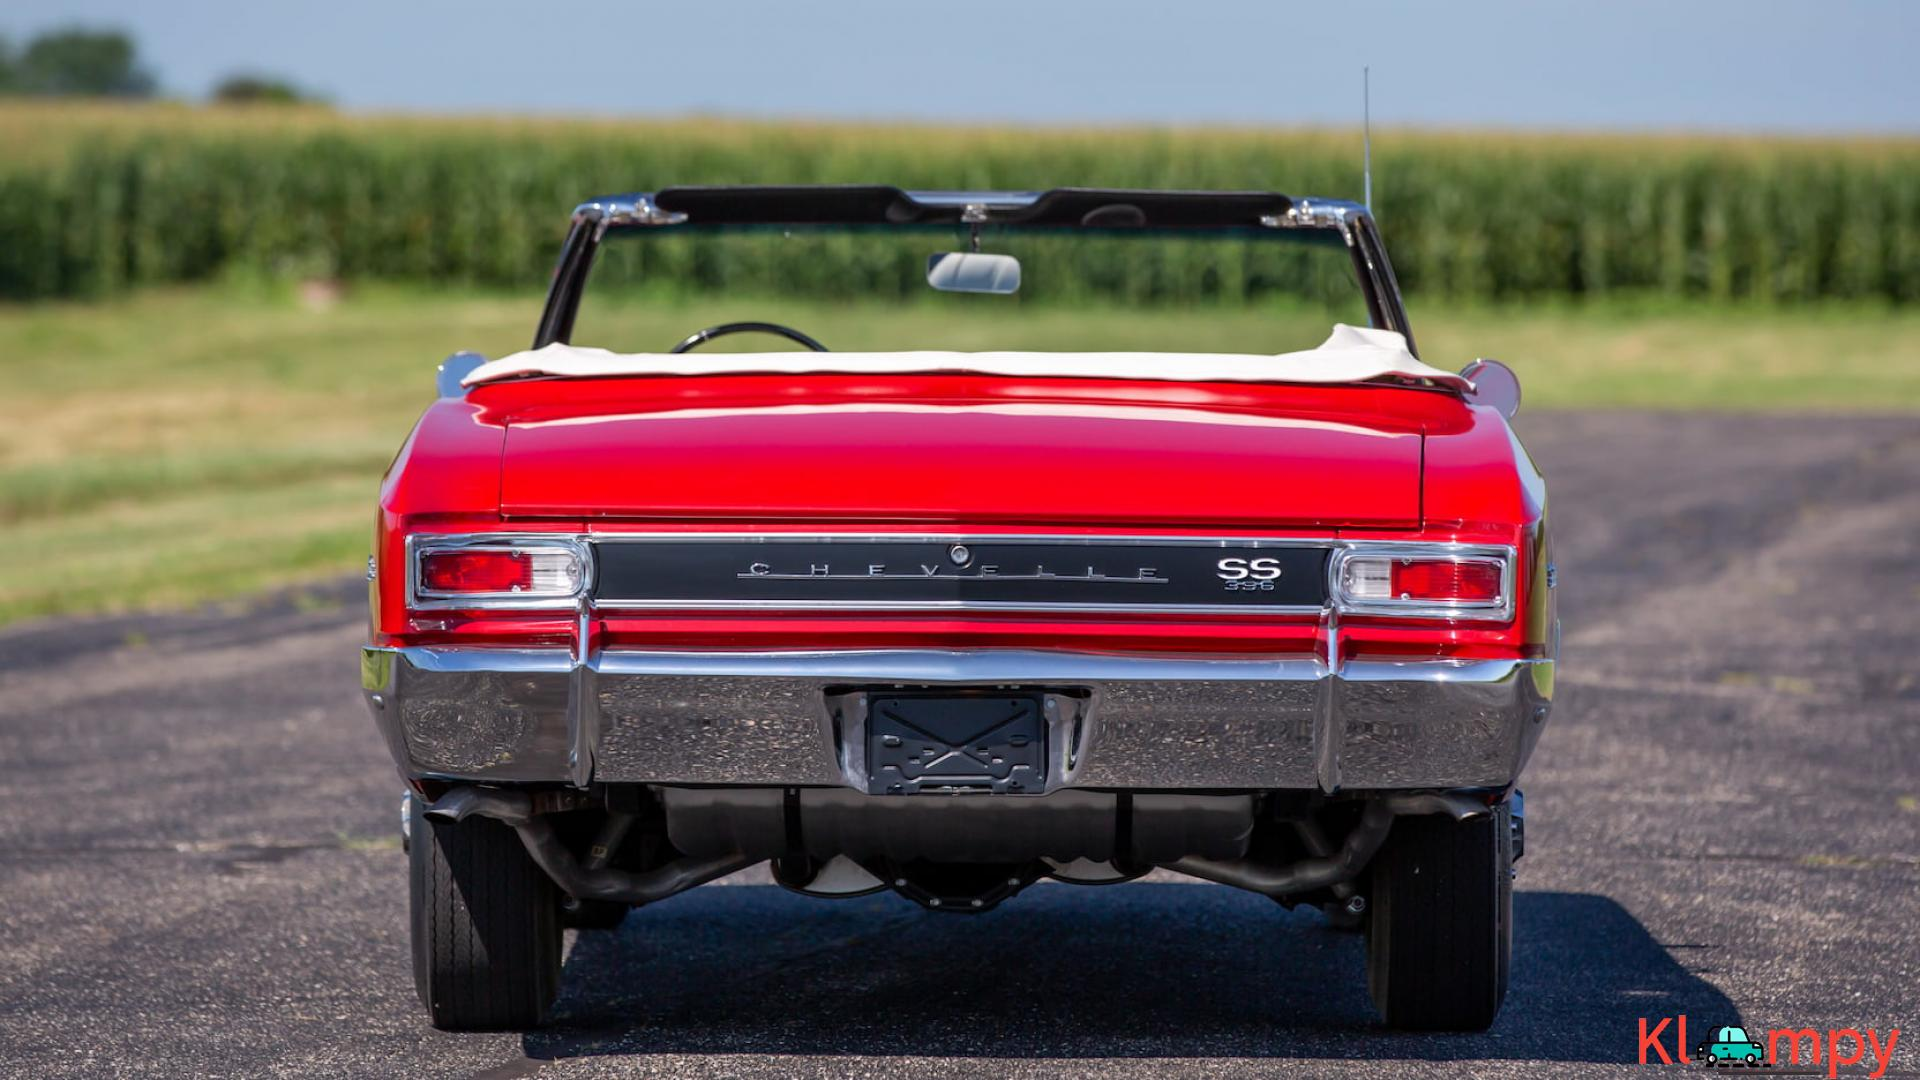 1966 Chevrolet Chevelle SS Convertible - 15/15